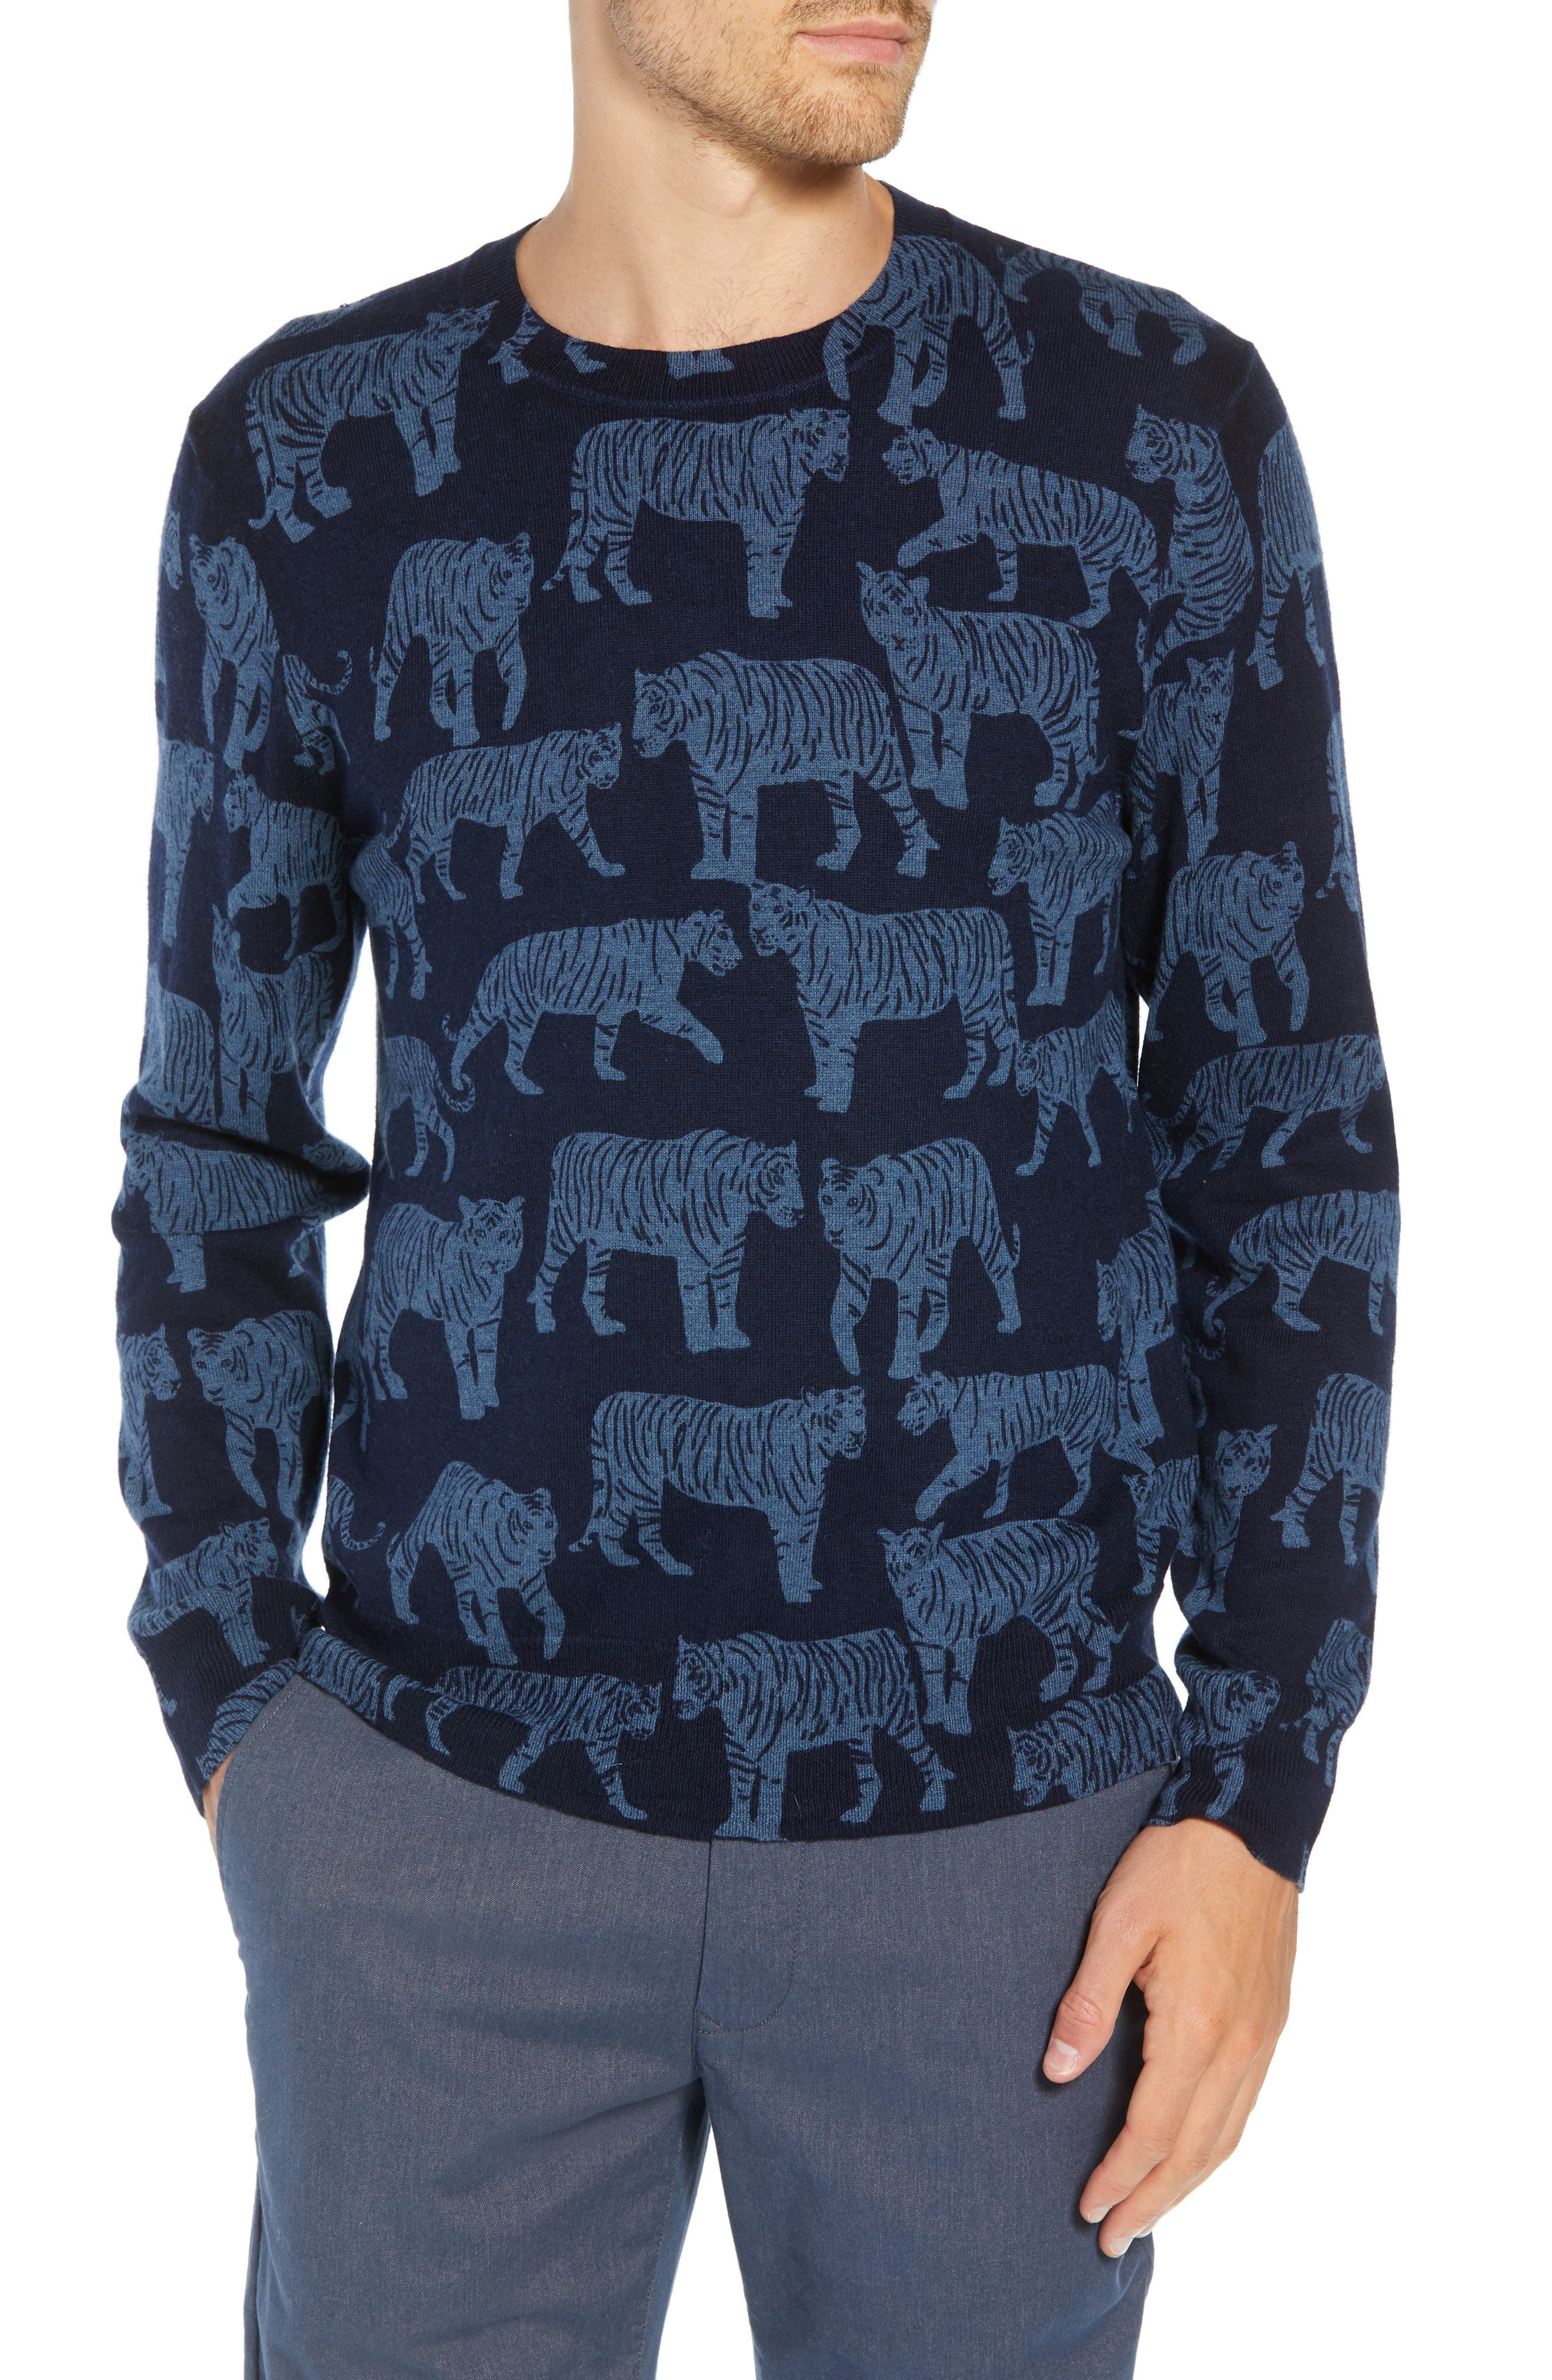 Slim Fit Tiger Print Sweater,                             Main thumbnail 1, color,                             NIGHTSHADOW/ FADED NAVY TIGRE